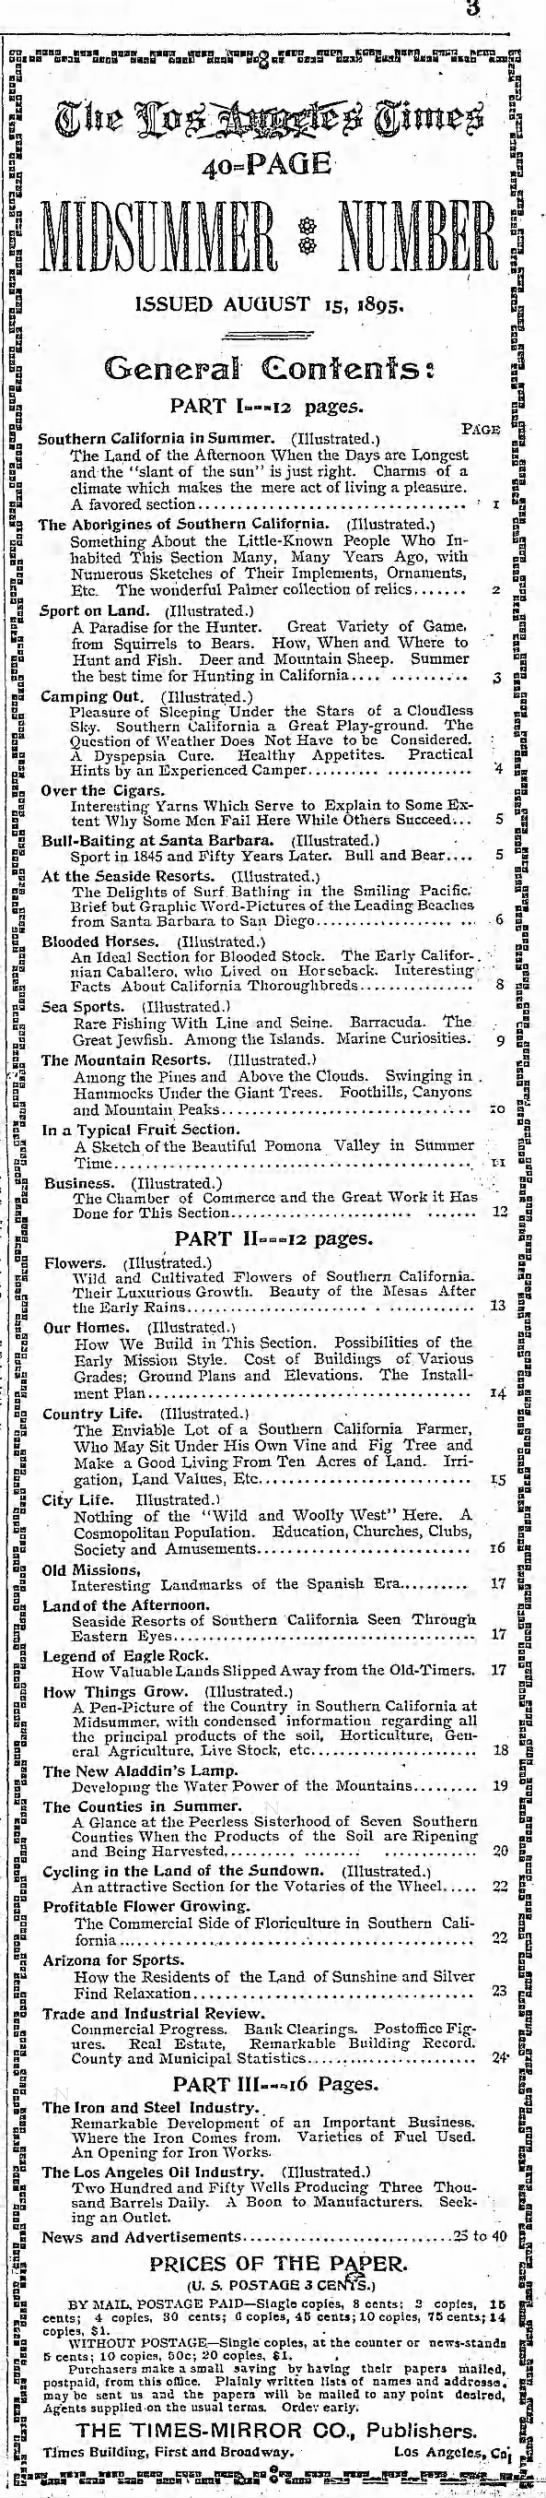 """Table of contents for Los Angeles Times' 1895 Midsummer Number - S3. BSM2,35'I""""Si!n5MSiIiS""""""""2S!1!""""3na'J""""Sc2..."""